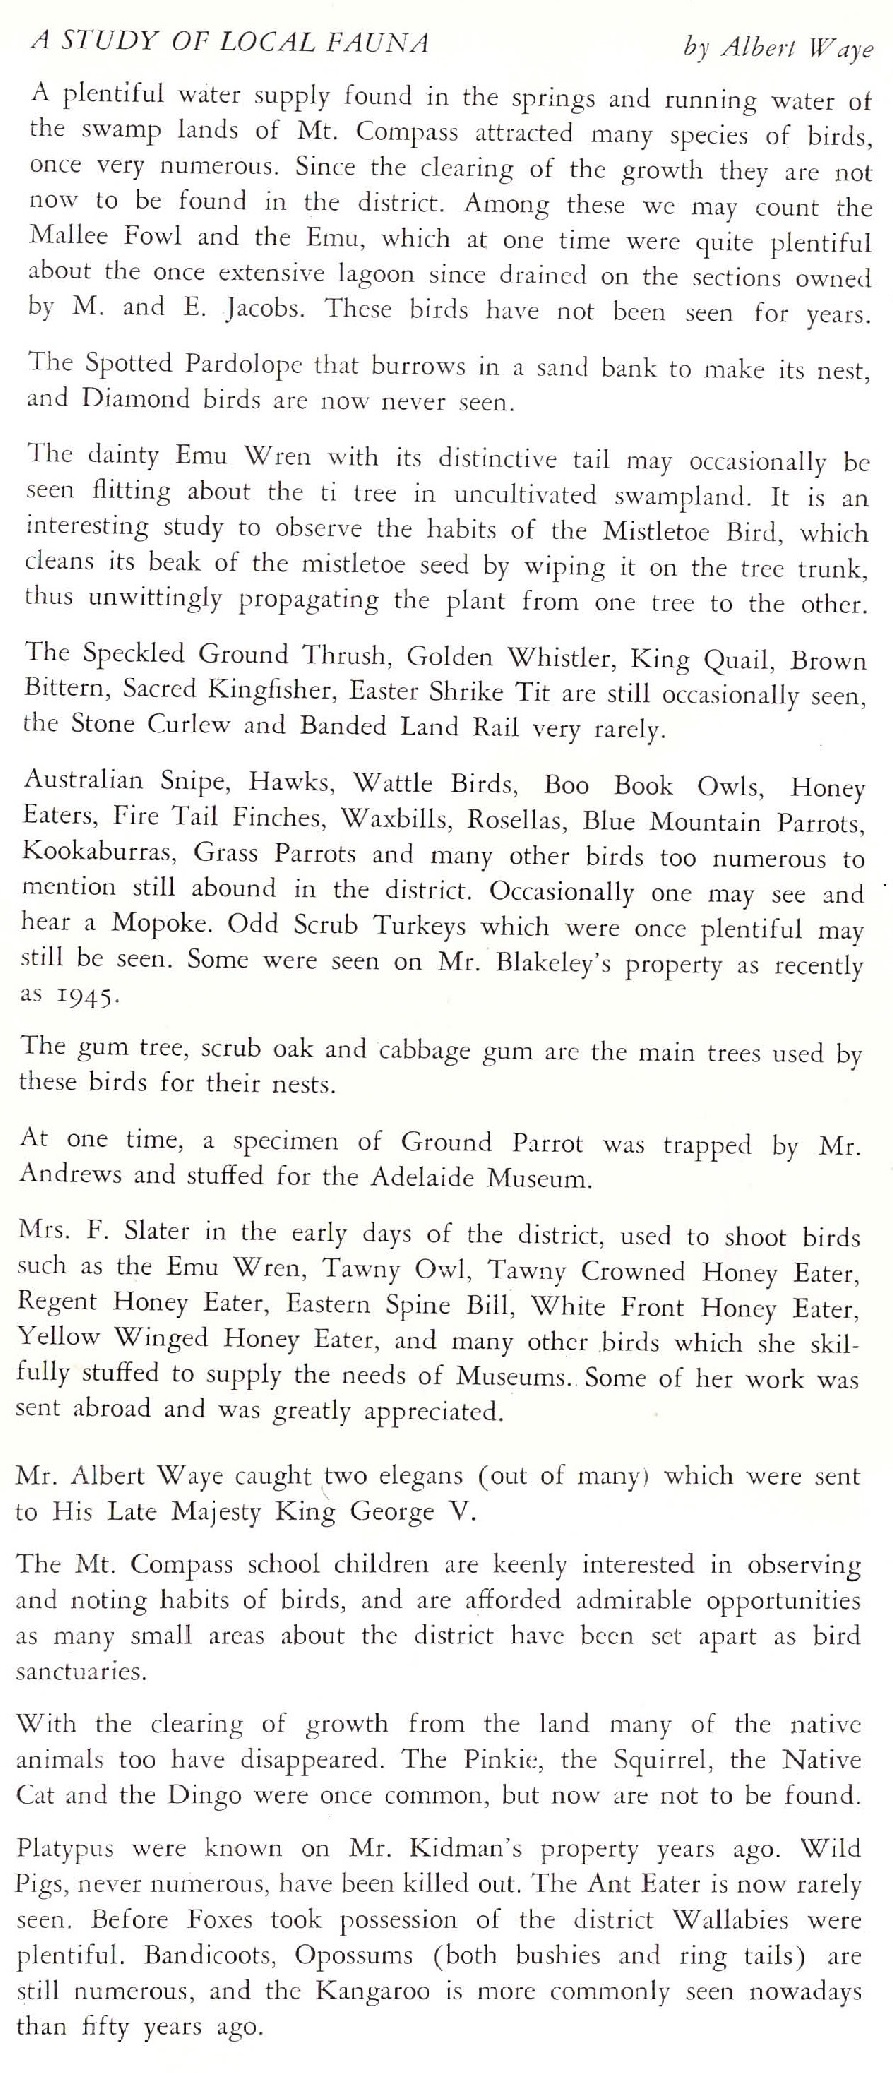 Albert Waye's recollections of the fauna of the Mount Compass district - as recorded in the town history book in 1946.